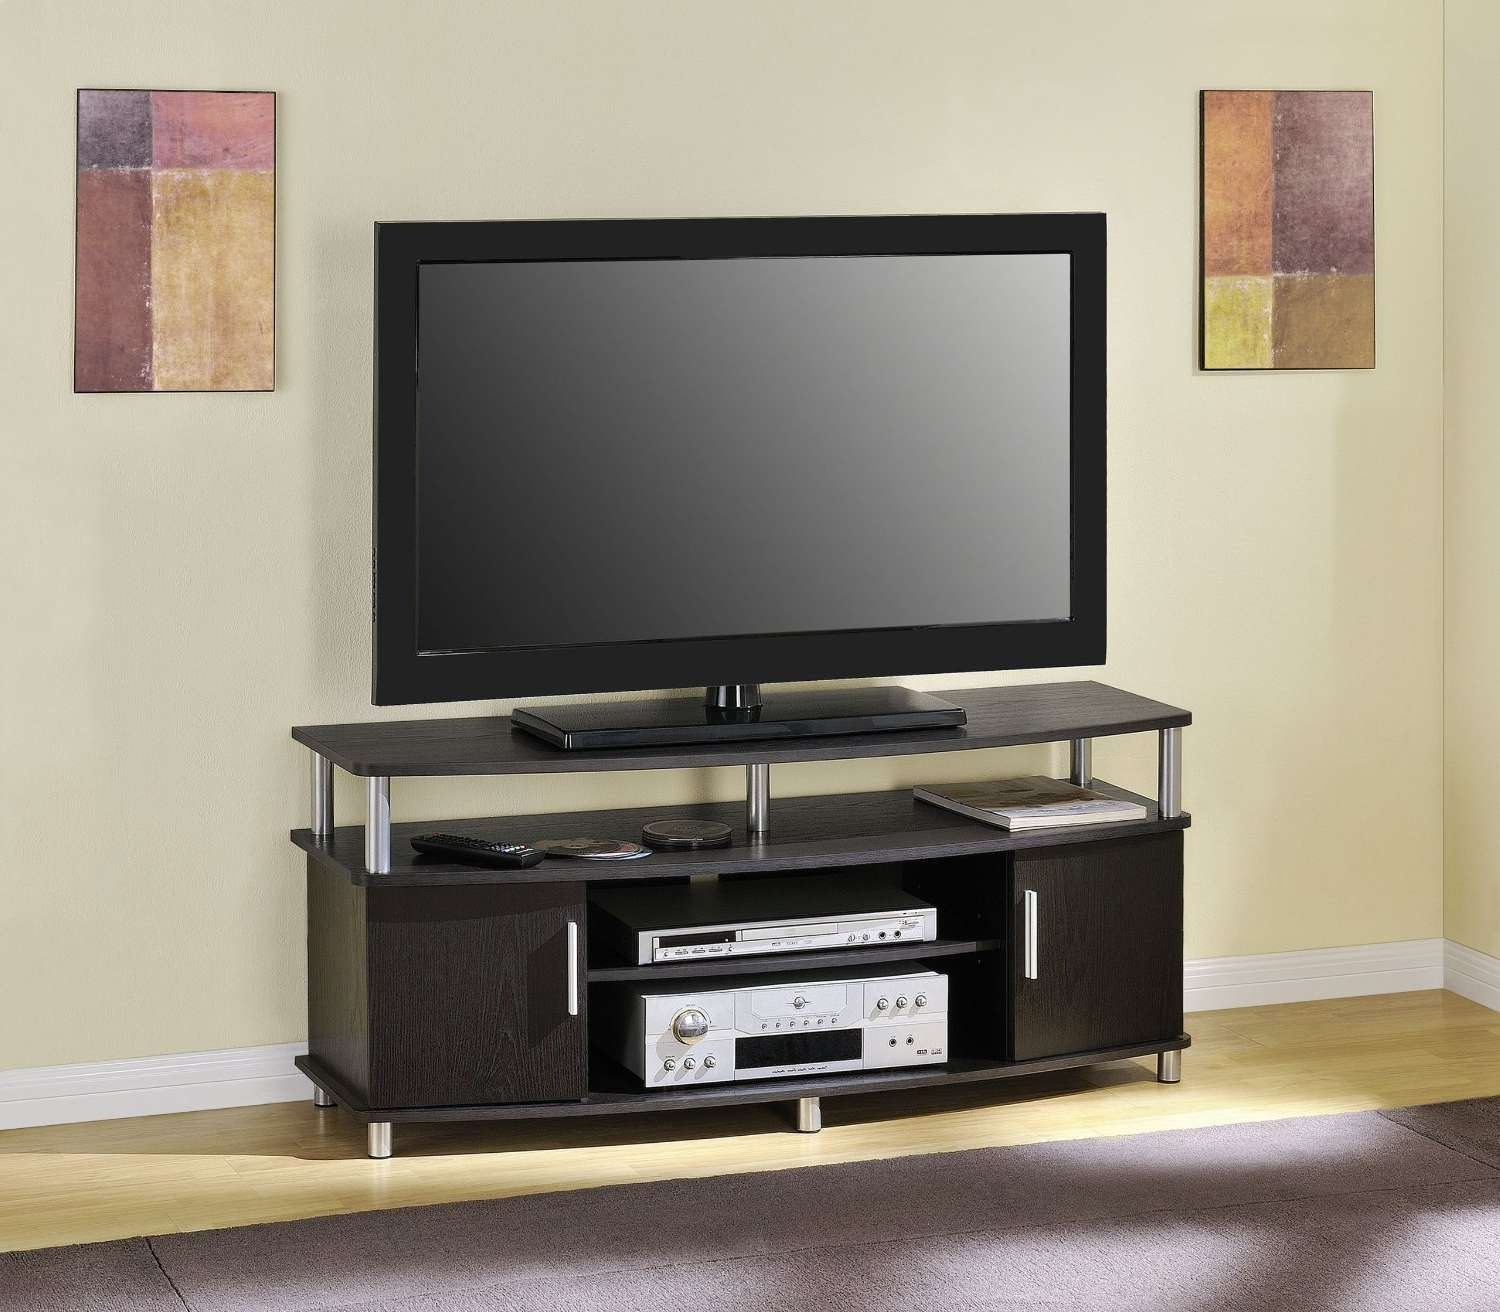 Tv Stands Best Selling Flat Screen Stand For Altra Furniture Pertaining To Big Tv Stands Furniture (View 14 of 15)